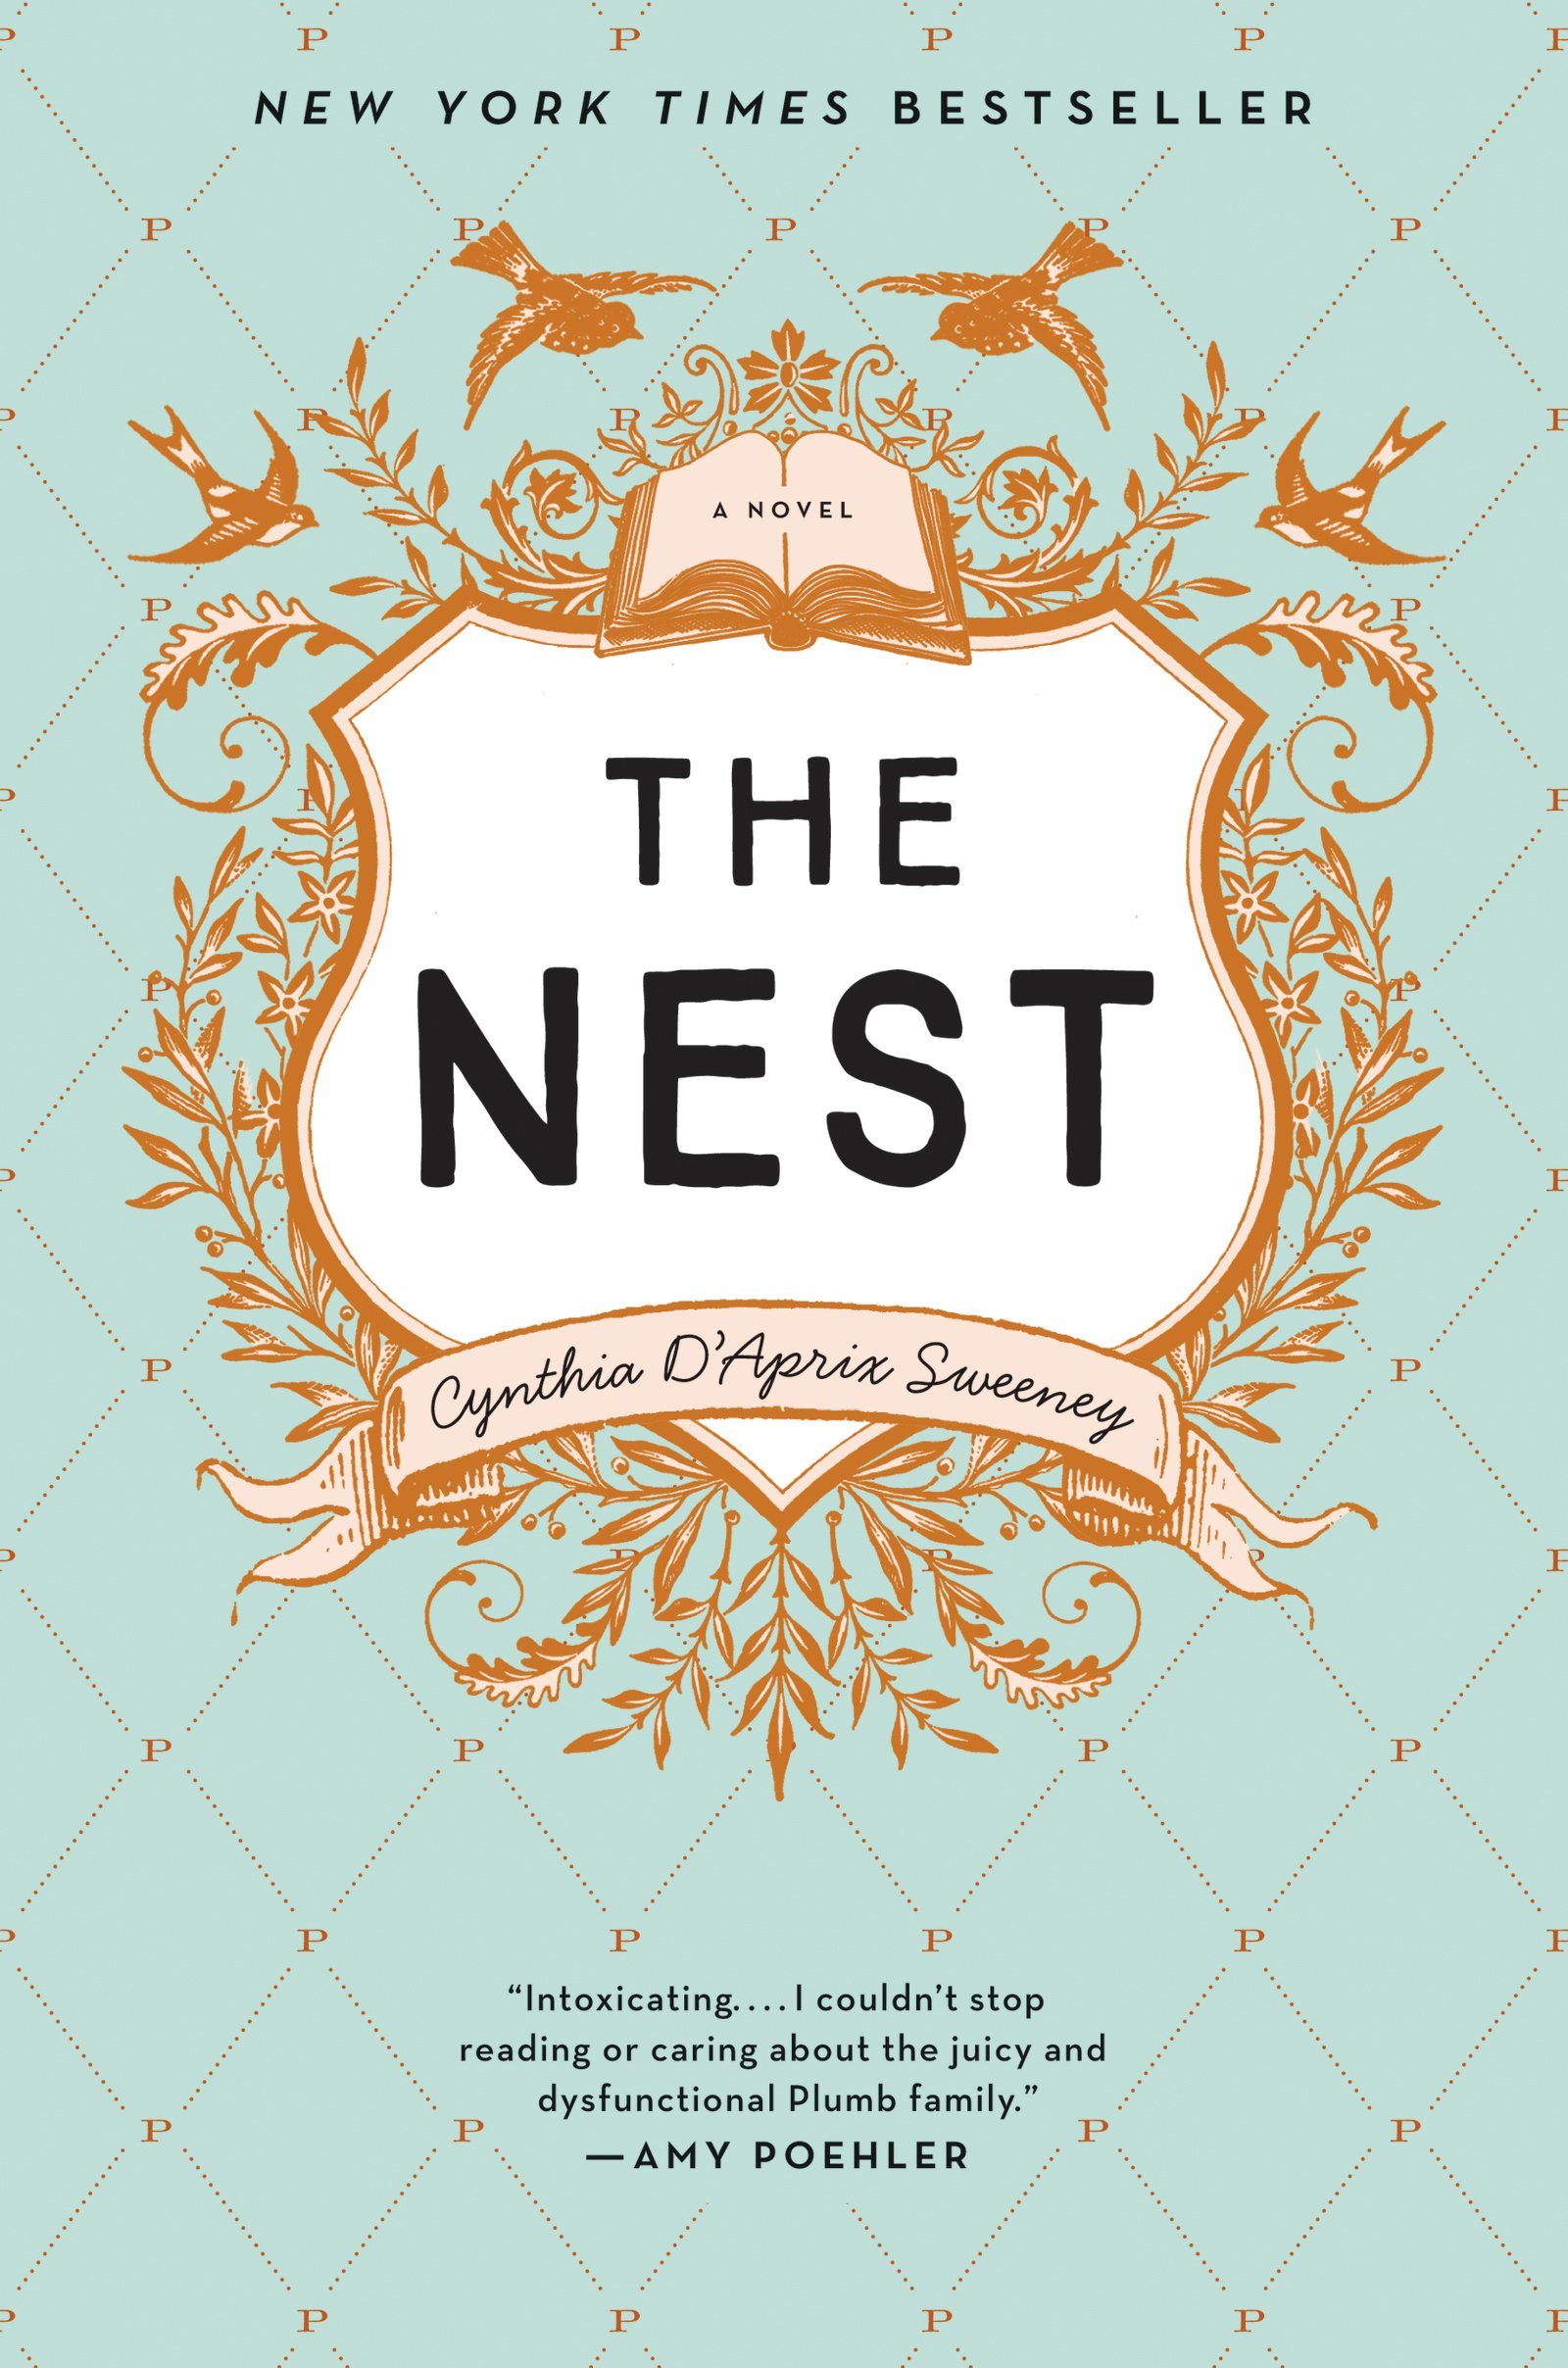 The Nest ISBN-13 9780062414212